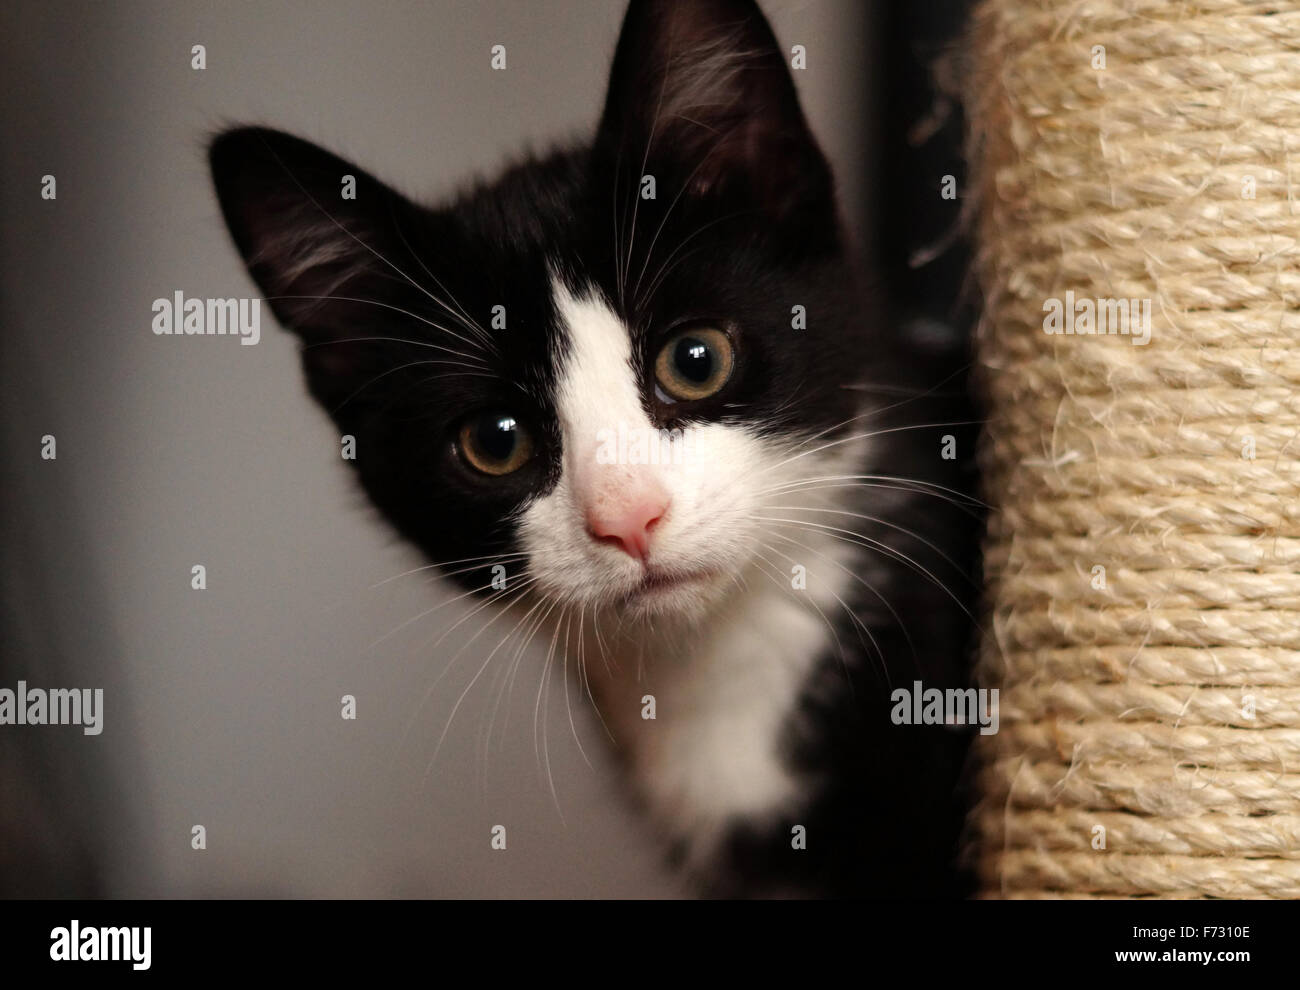 Black and White Cute Fluffy Kitten with Green Eyes Looking at Camera from sctraching post - Stock Image